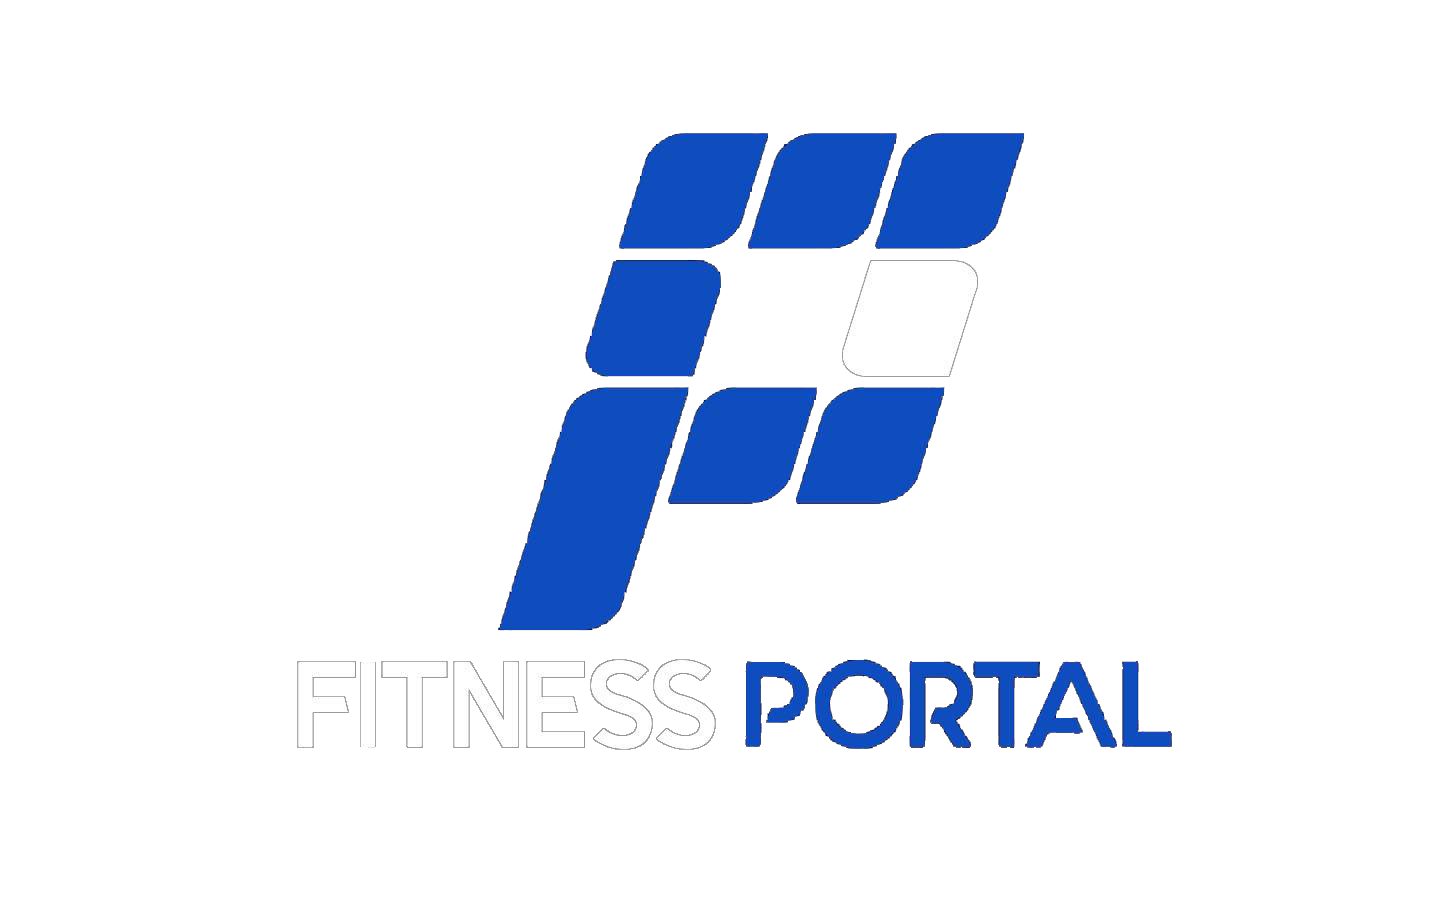 the fitness portal